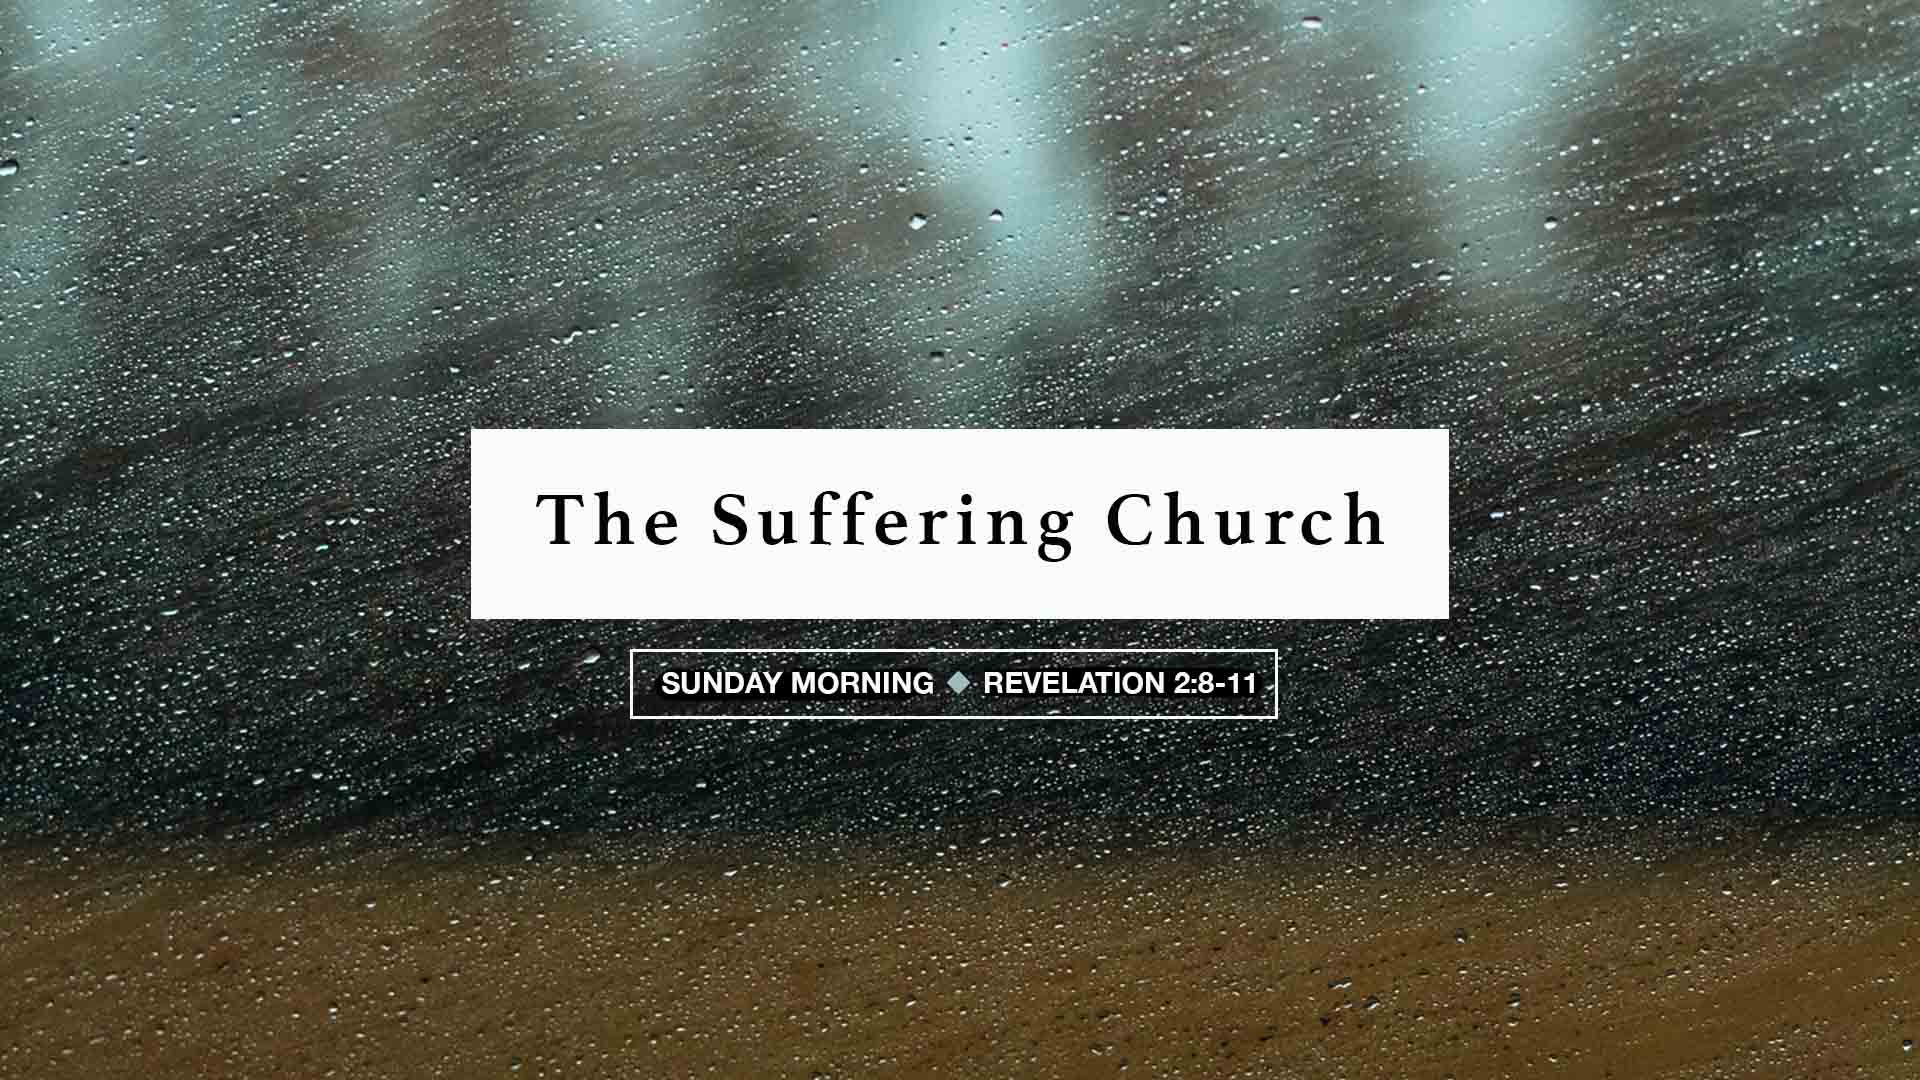 The Suffering Church - Revelation 2:8-11